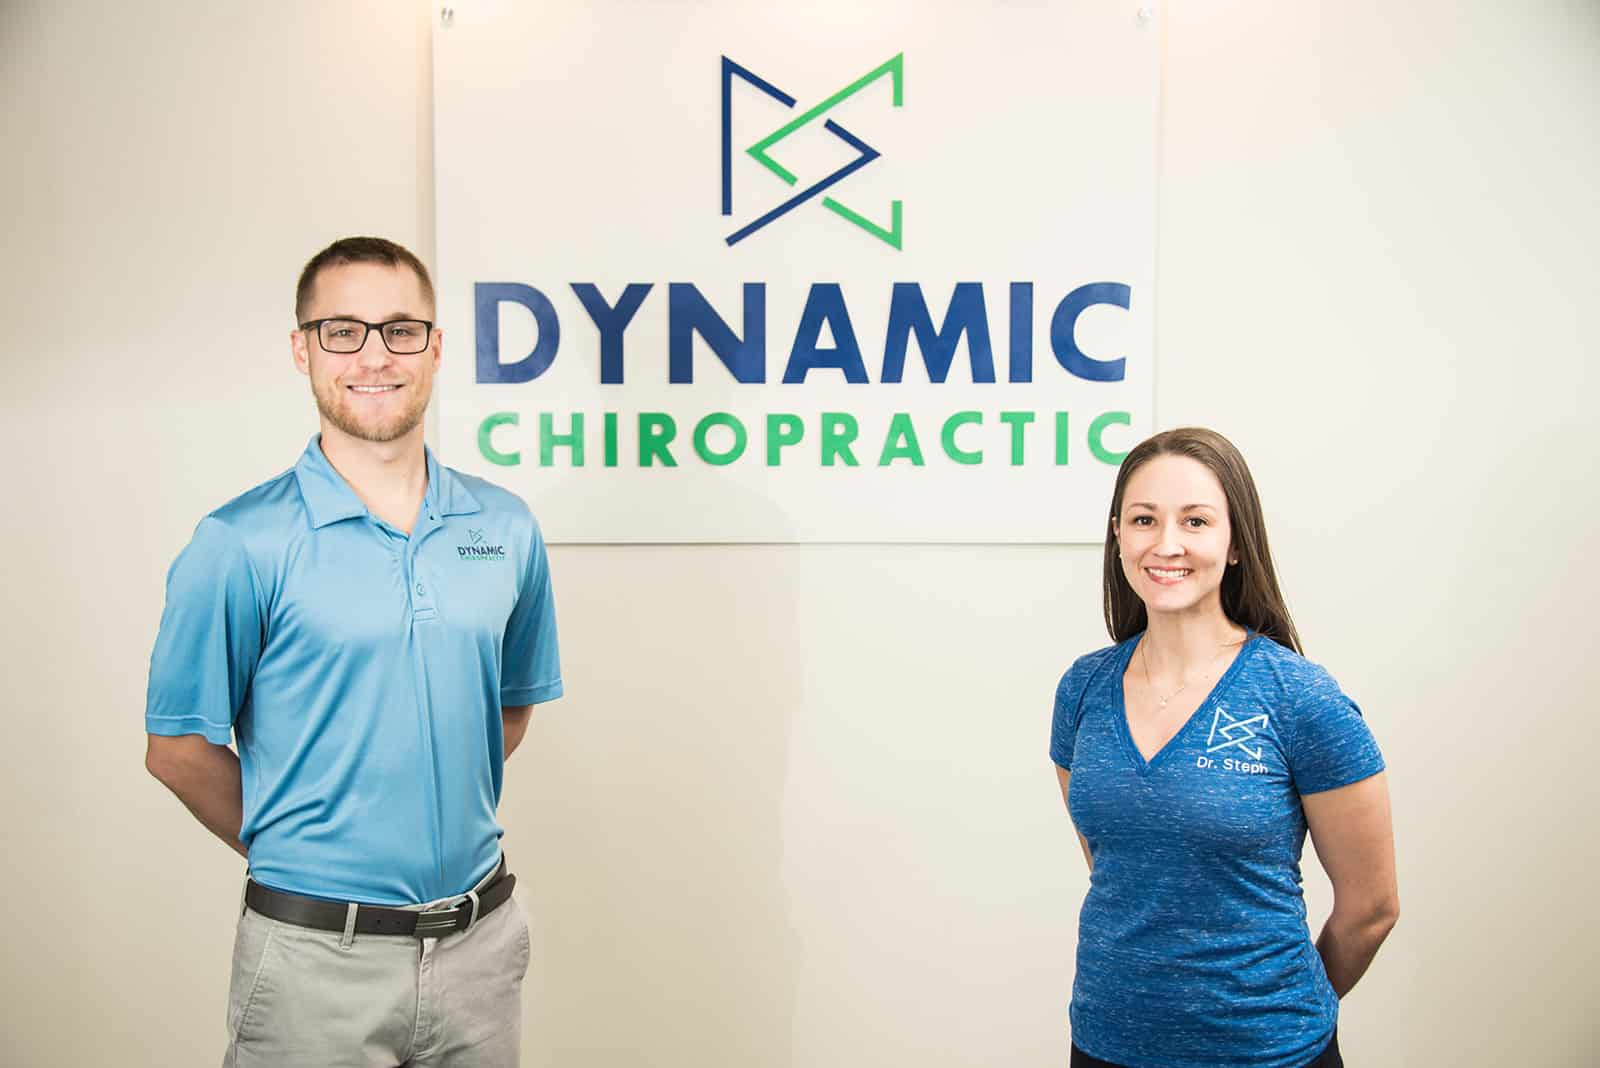 Chiropractic Treatment - Dynamic Chiropractic